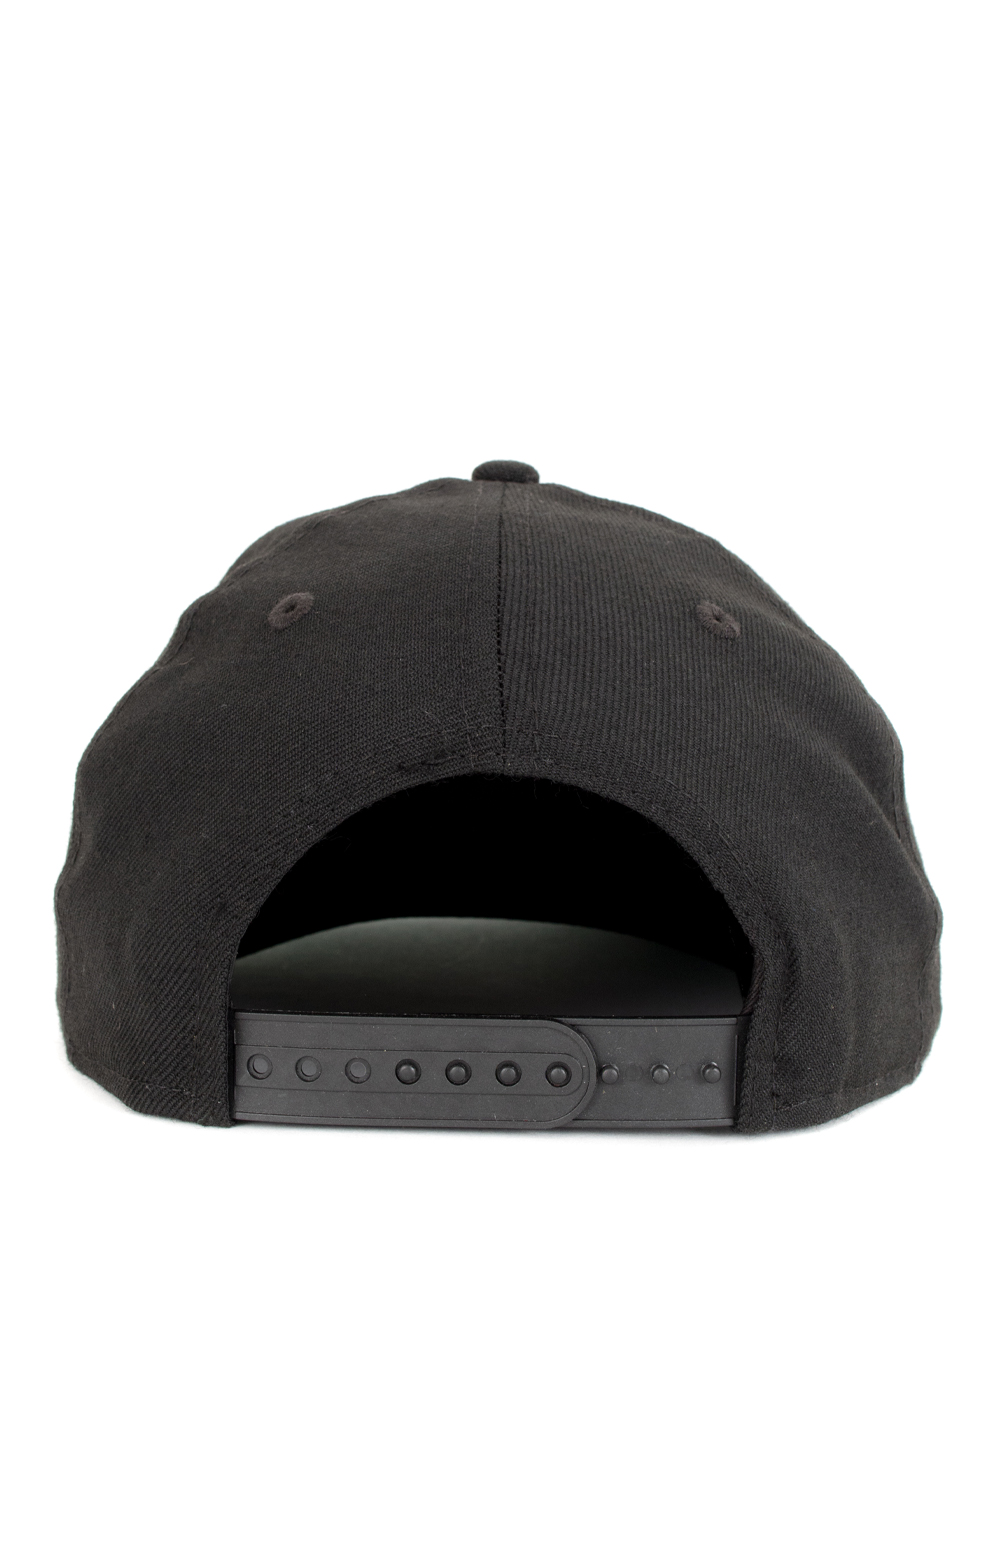 Crown NE Snap-Back Hat - Black/Green 3